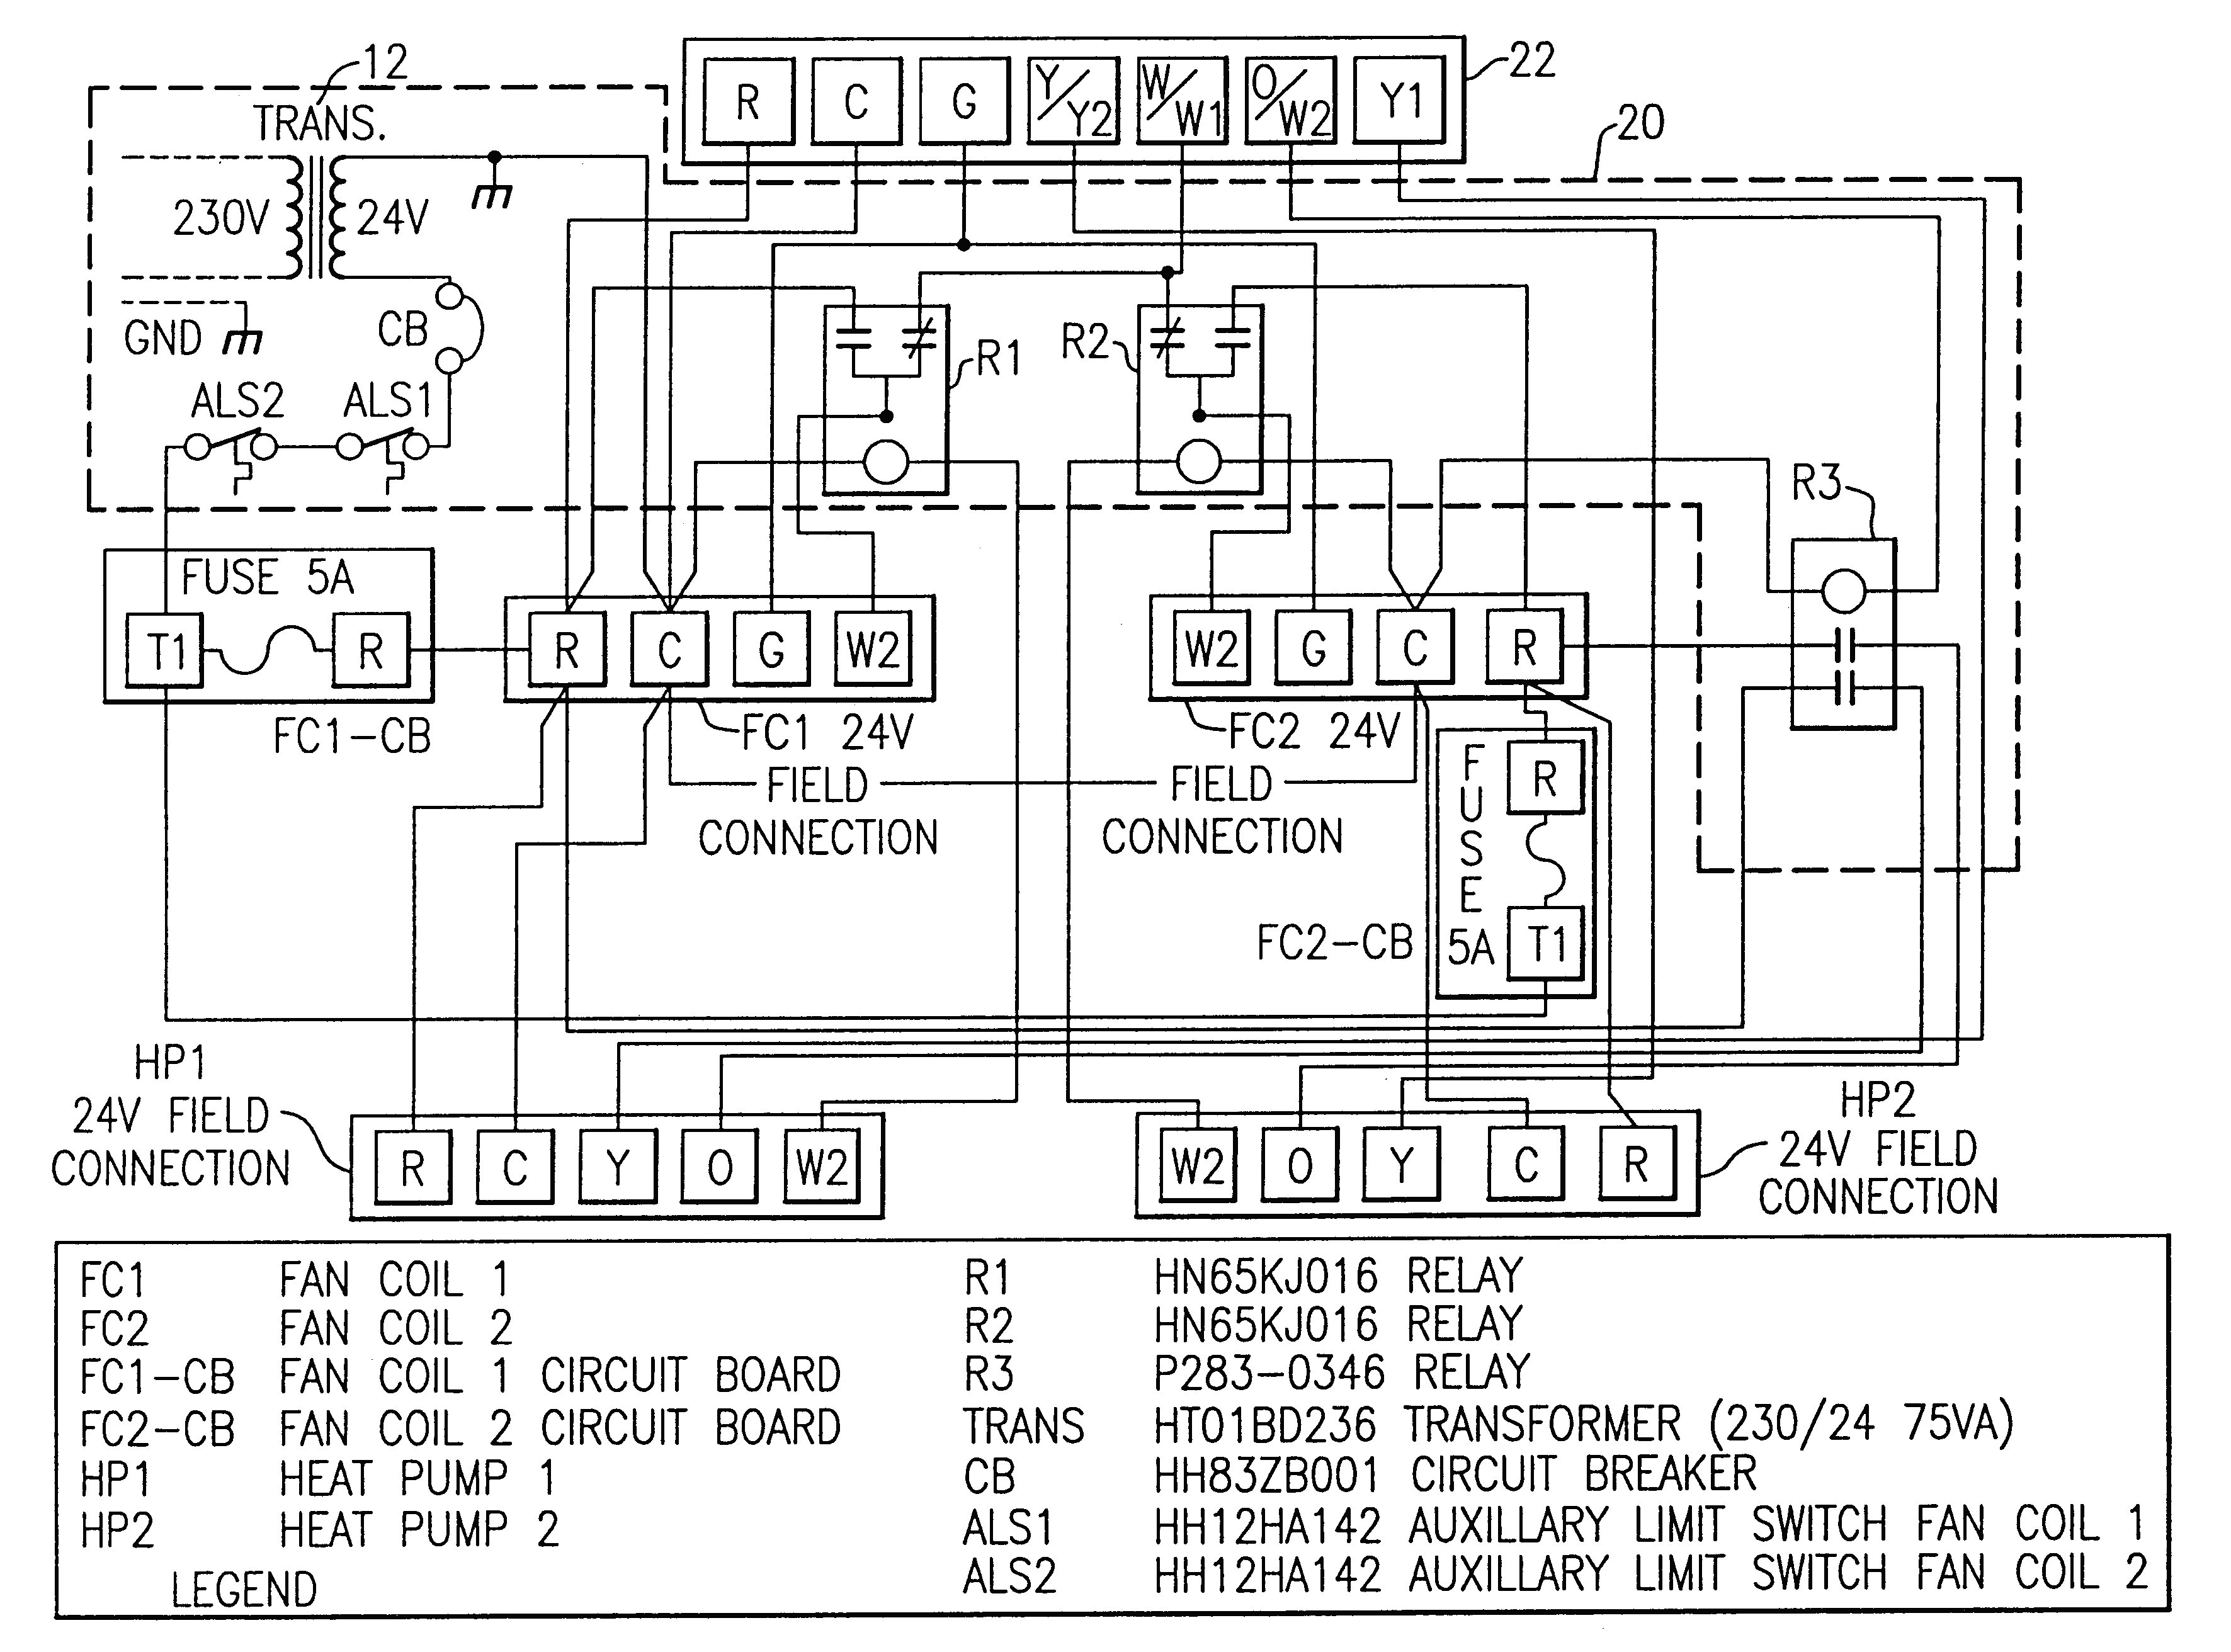 goodman heat pump package unit wiring diagram Collection-Goodman Heat Pump Package Unit Wiring Diagram New Lennox Thermostat Mesmerizing 5-e